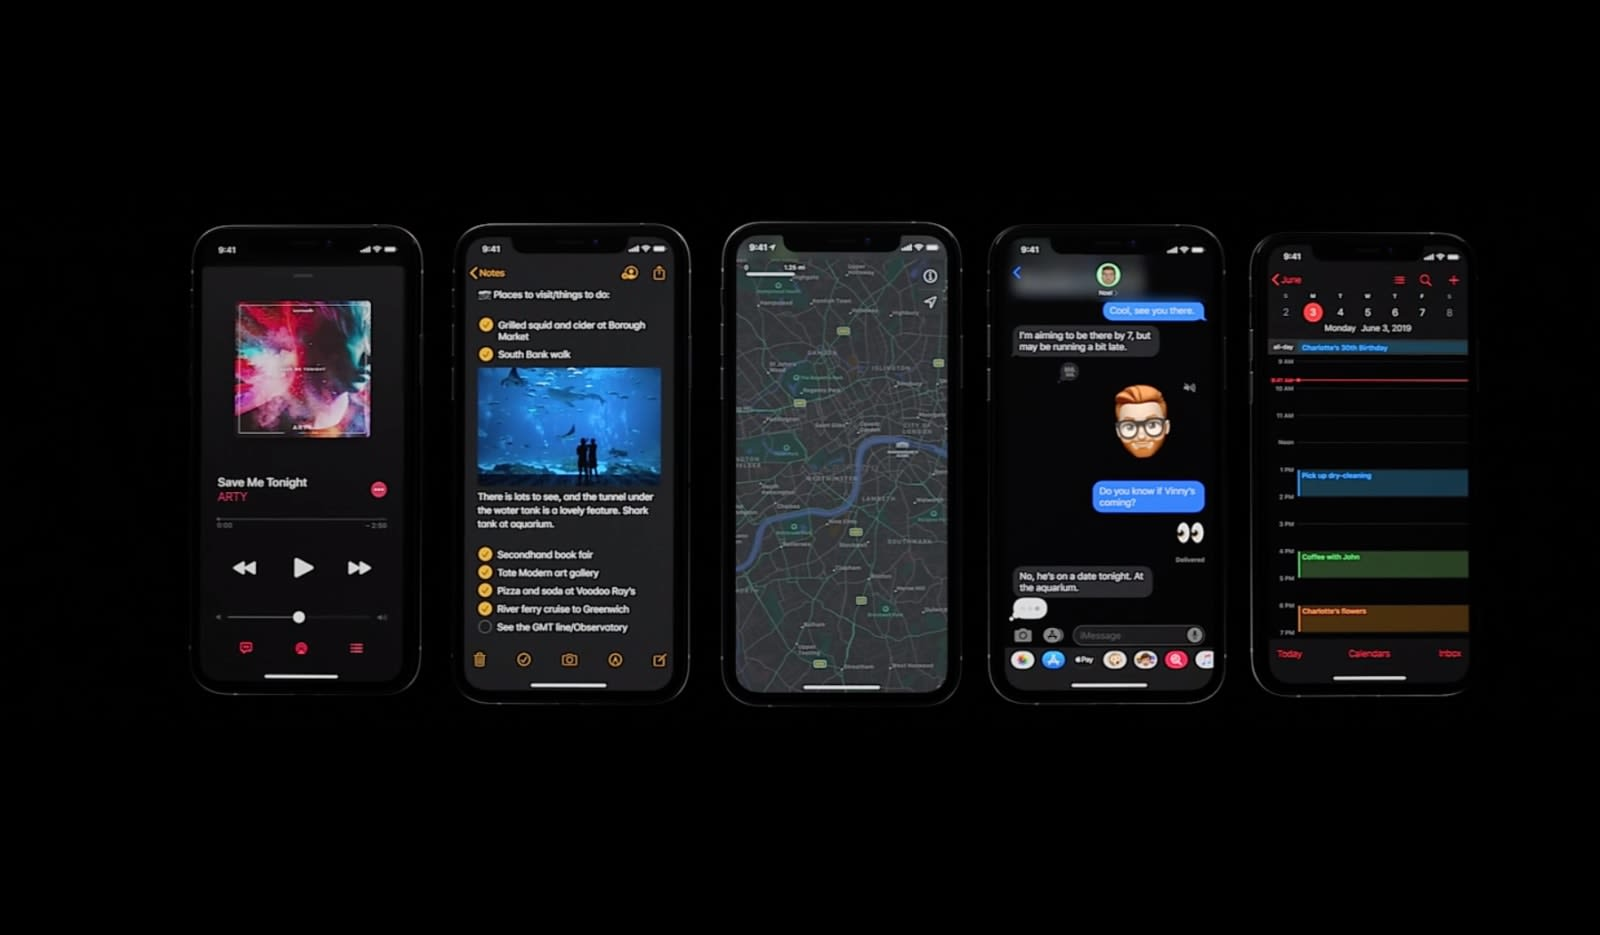 Apple Adds System Wide Dark Mode For Ios 13 Engadget